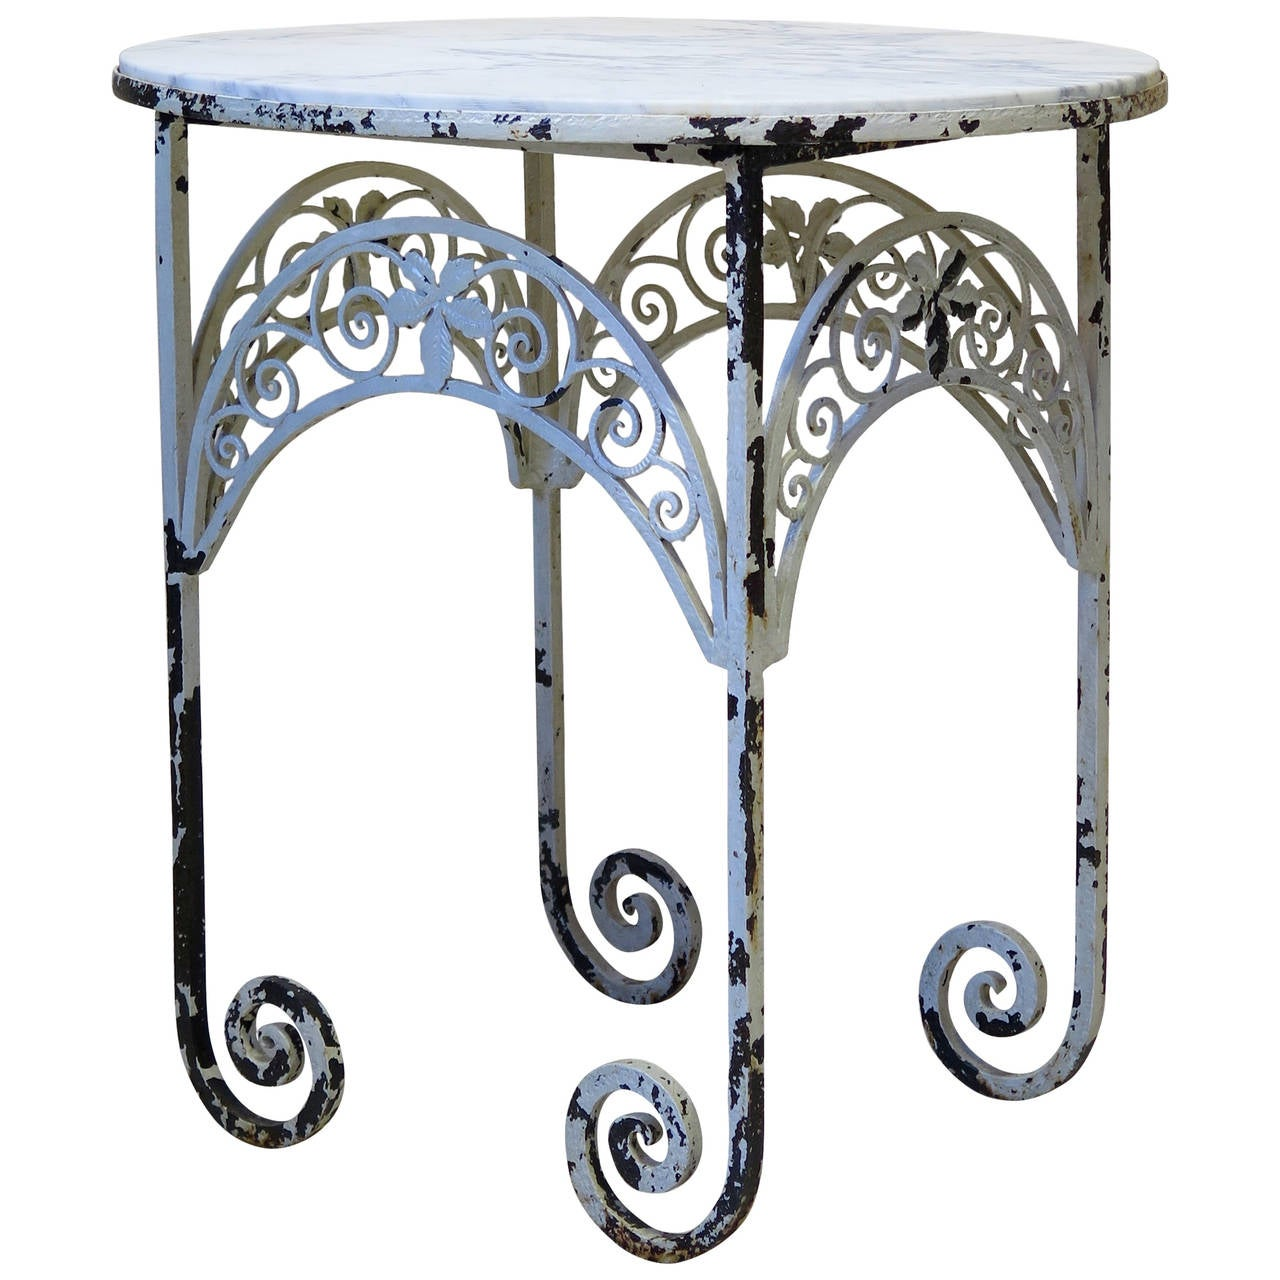 Oval art deco wrought iron and marble side table france for Wrought iron side table